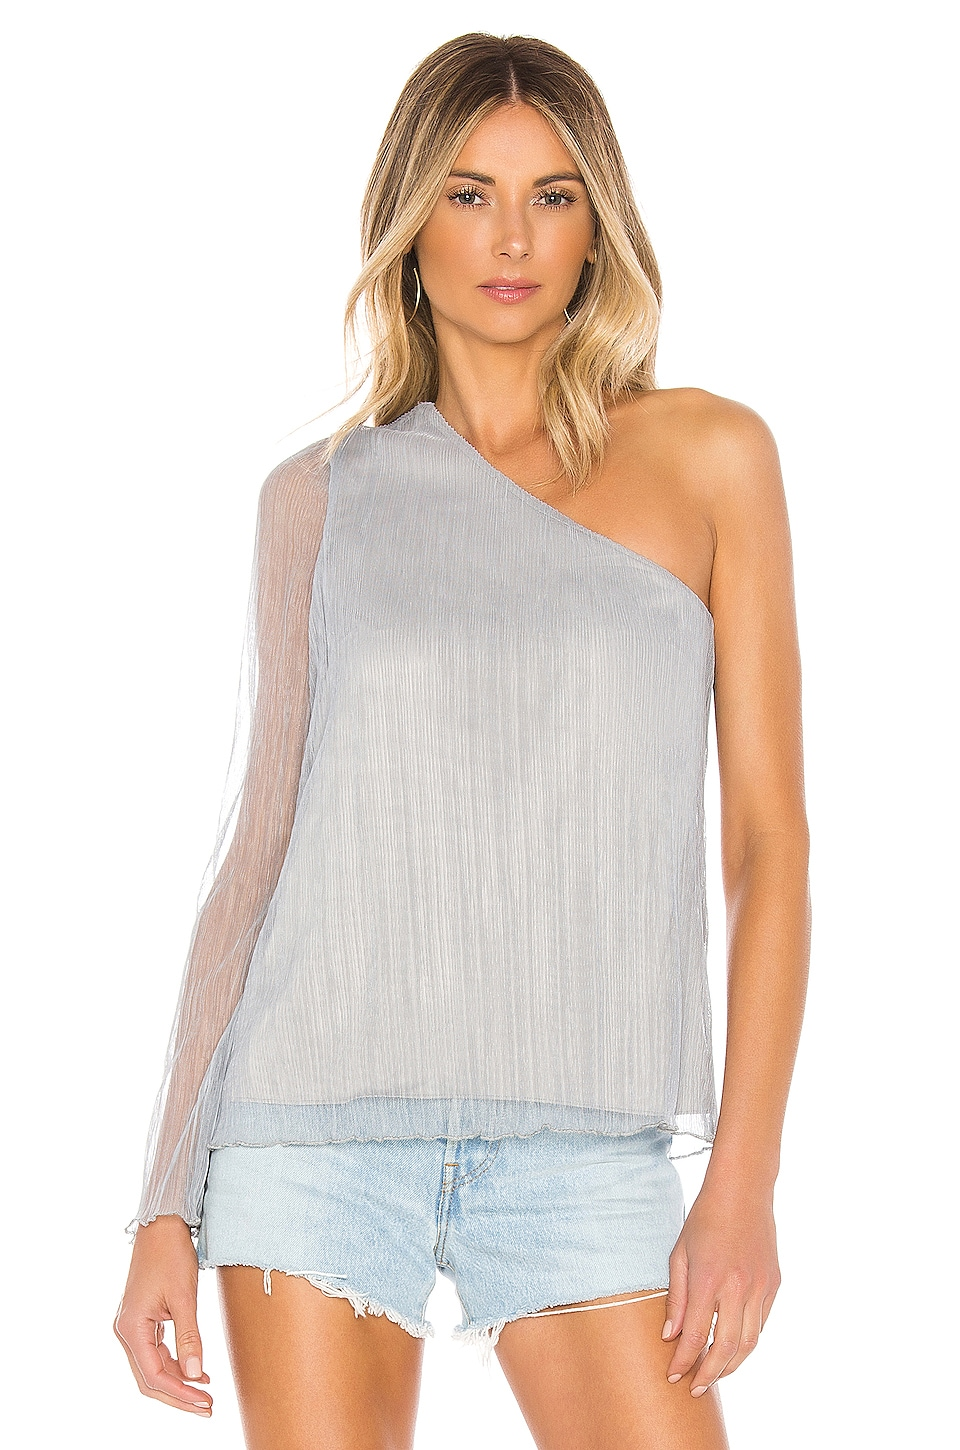 House of Harlow 1960 X REVOLVE Ross Top in Dusty Blue